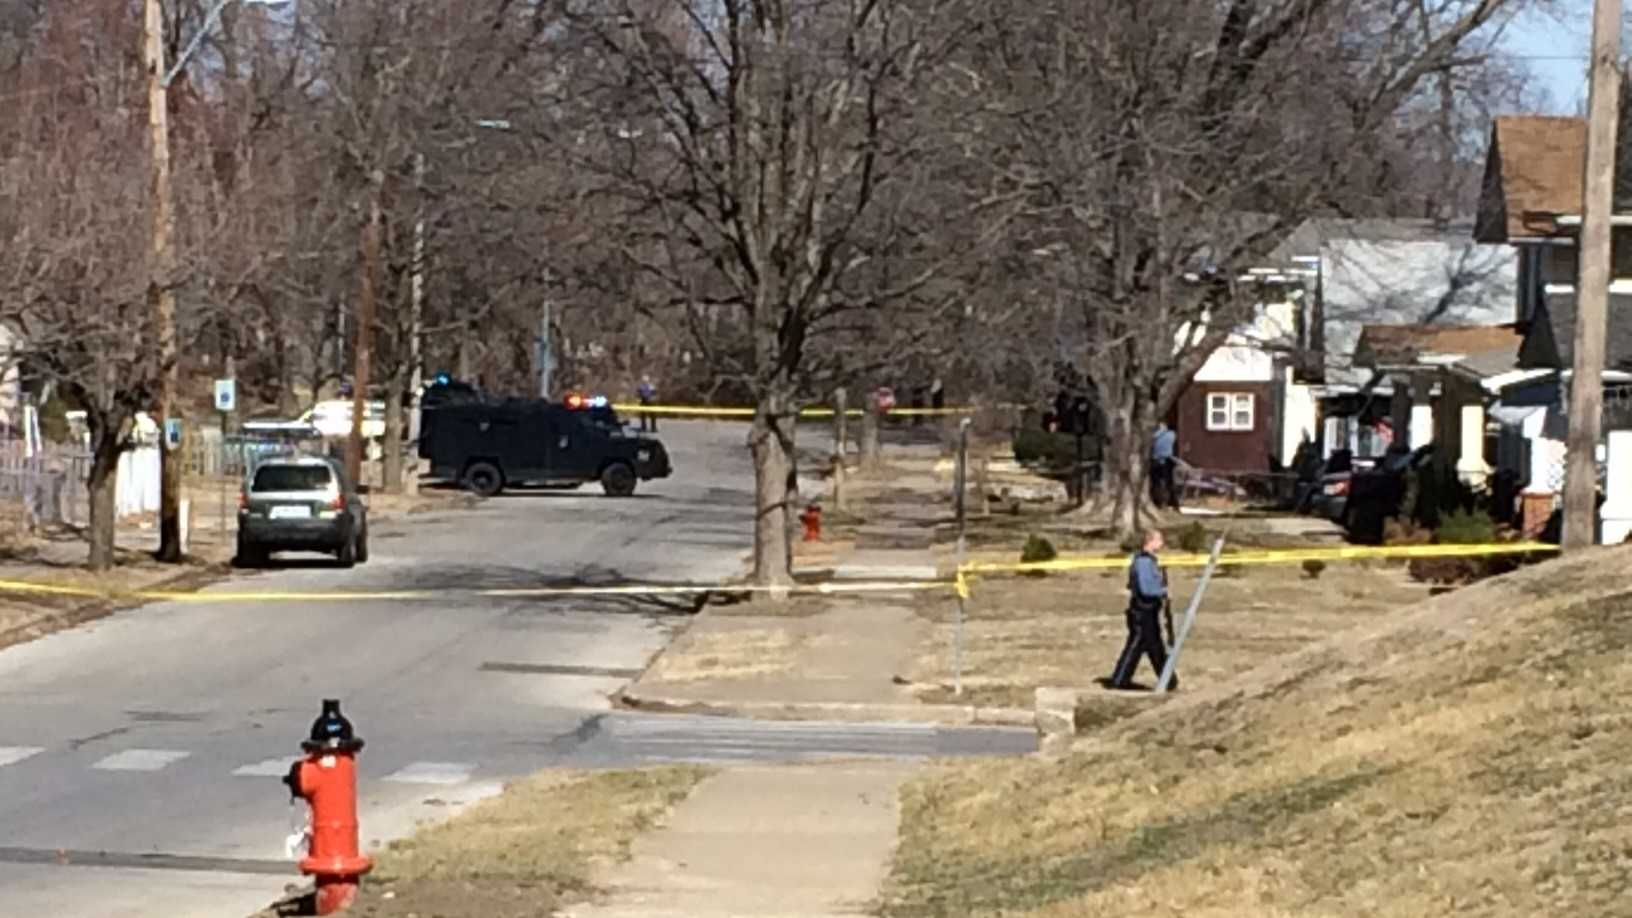 Kansas City police responded to a stand-off situation at a residence in the 400 block of N. Elmwood Ave. Saturday afternoon.